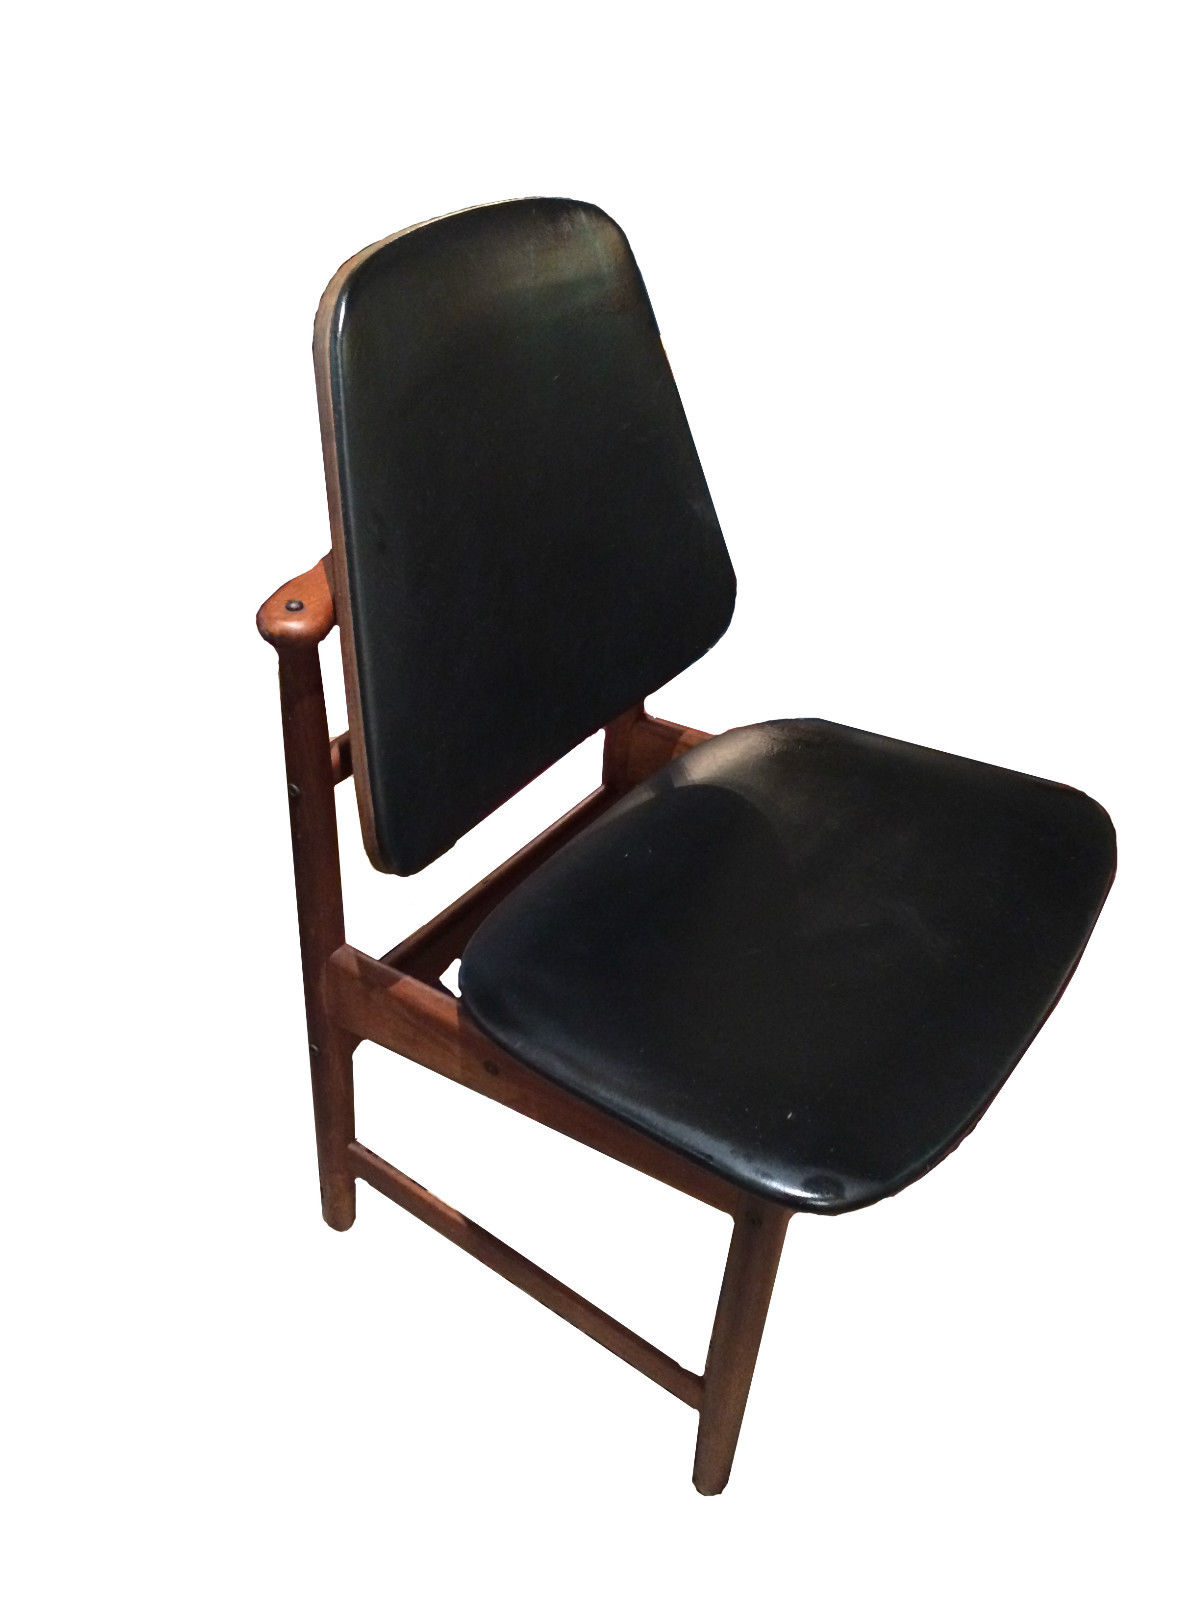 Arne Hovmand Olsen Danish Modern Dining Chairs Modernism